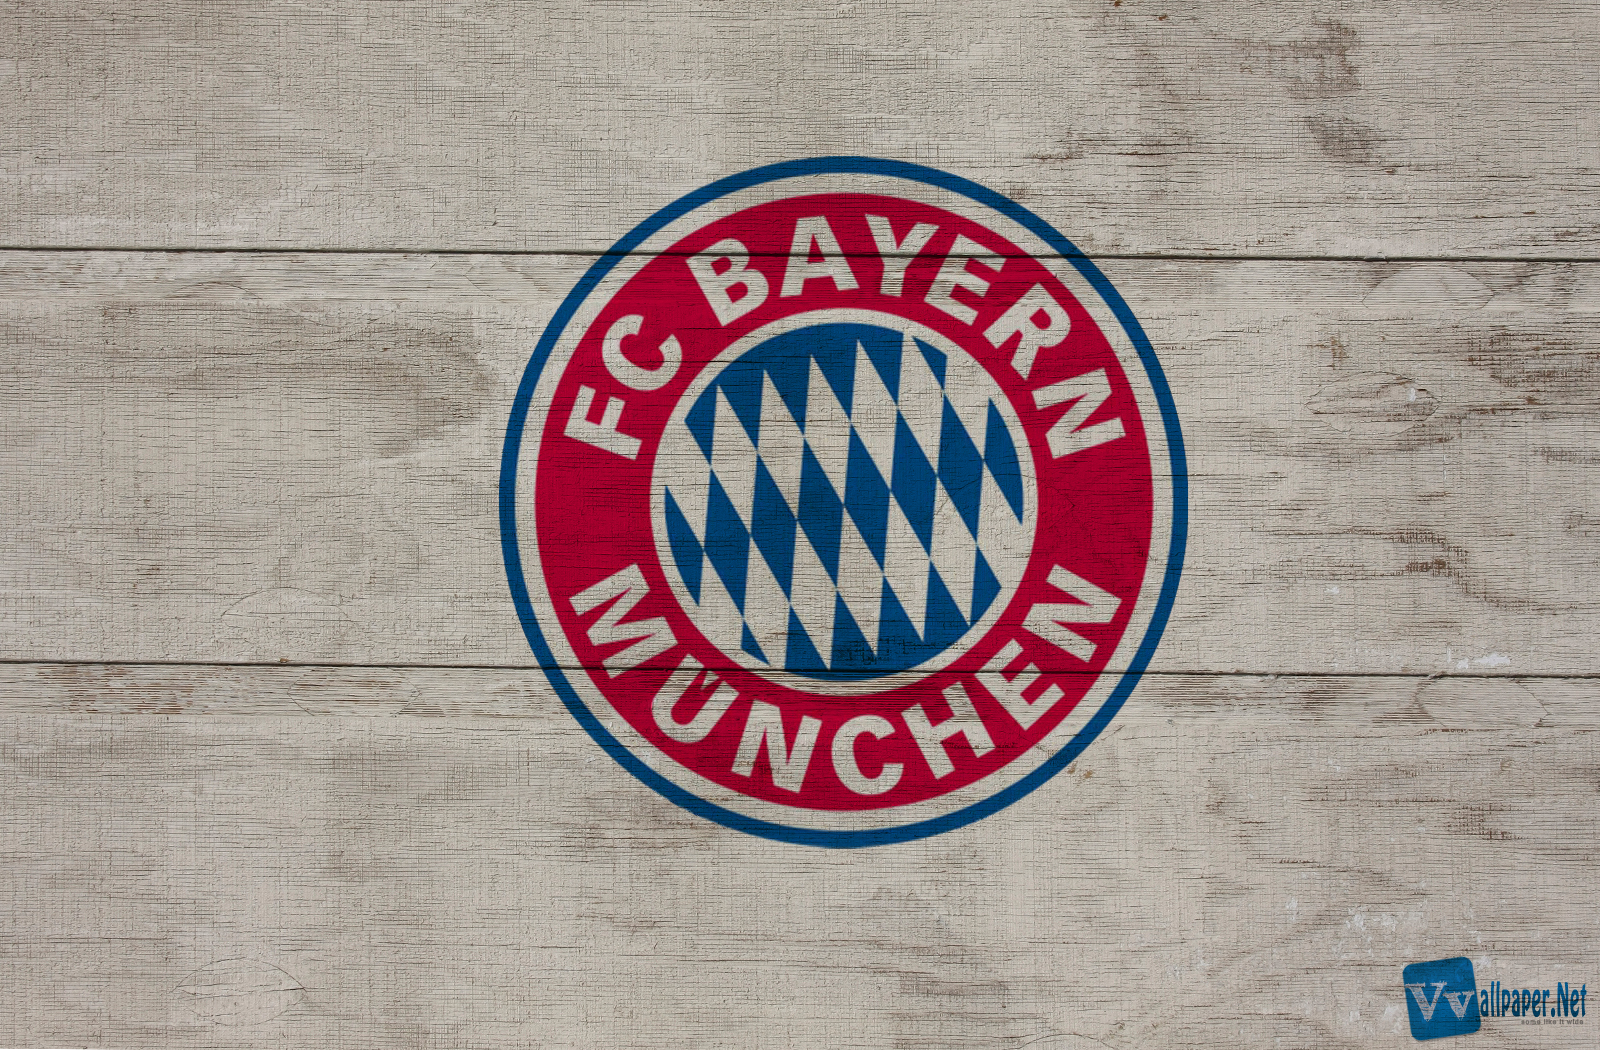 Bayern munich hd pictures for Chilson motors in chippewa falls